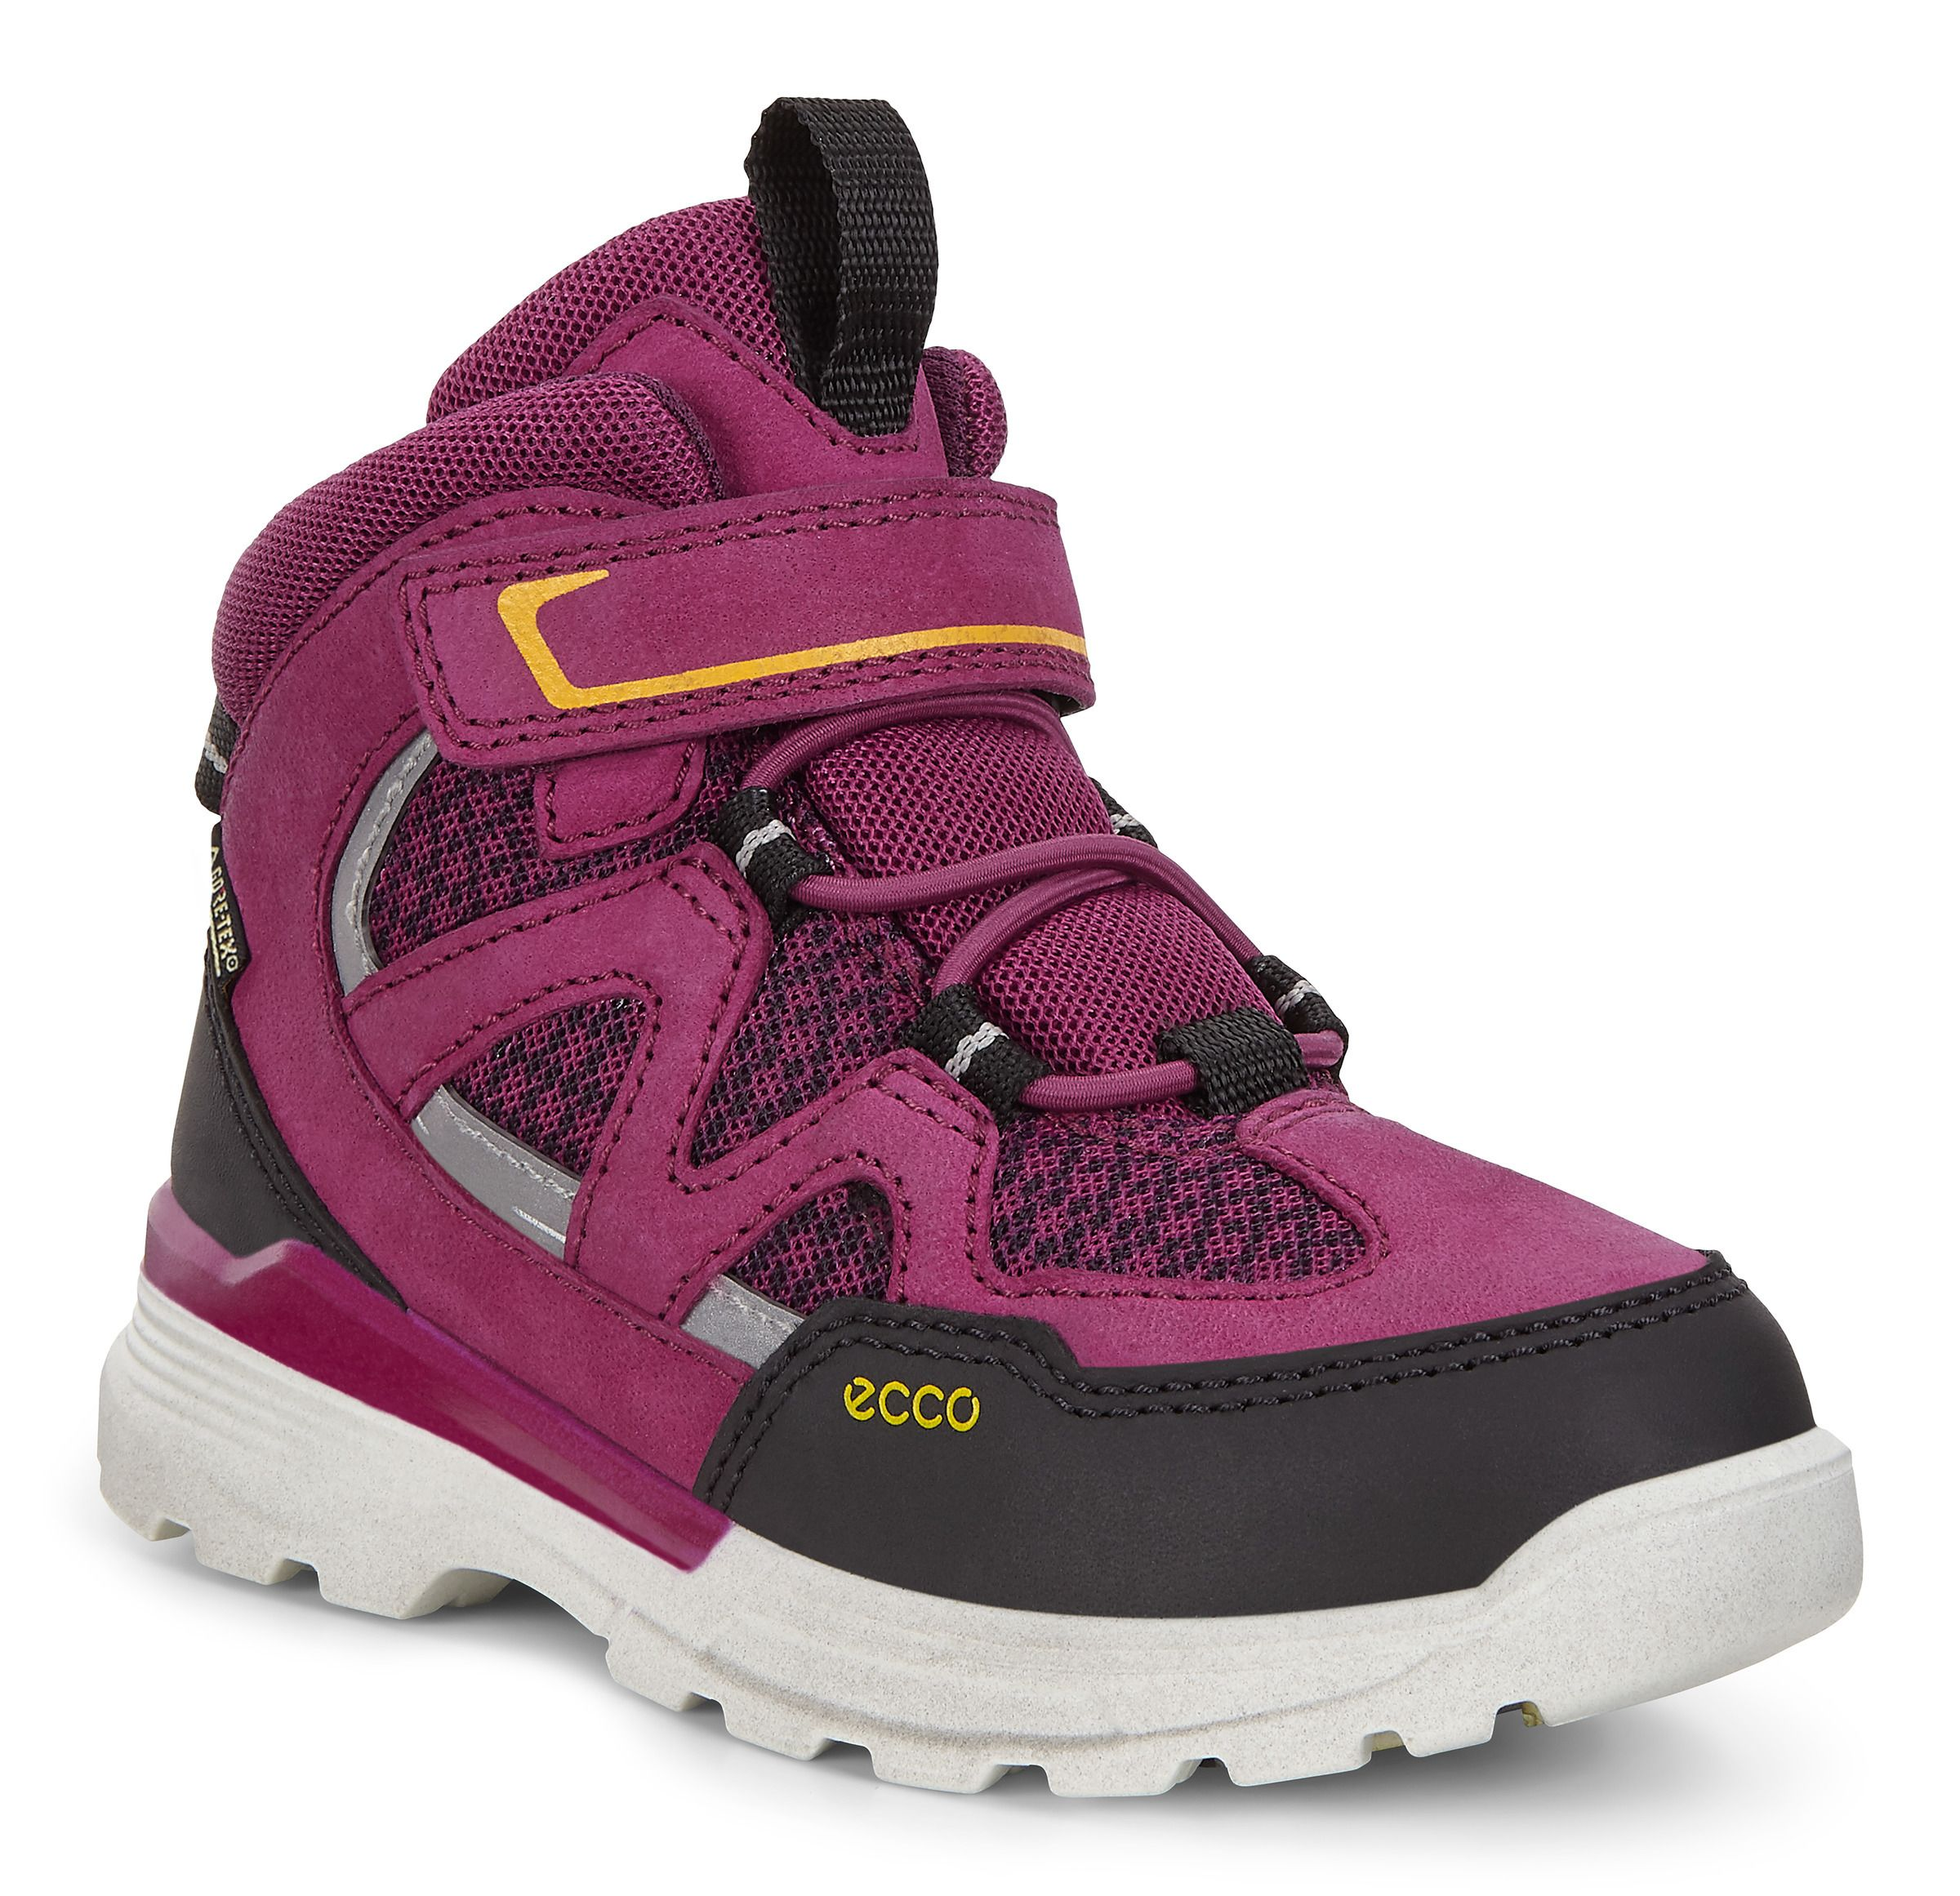 Official Website Sale Ecco Running Shoes Review Kids Shoes